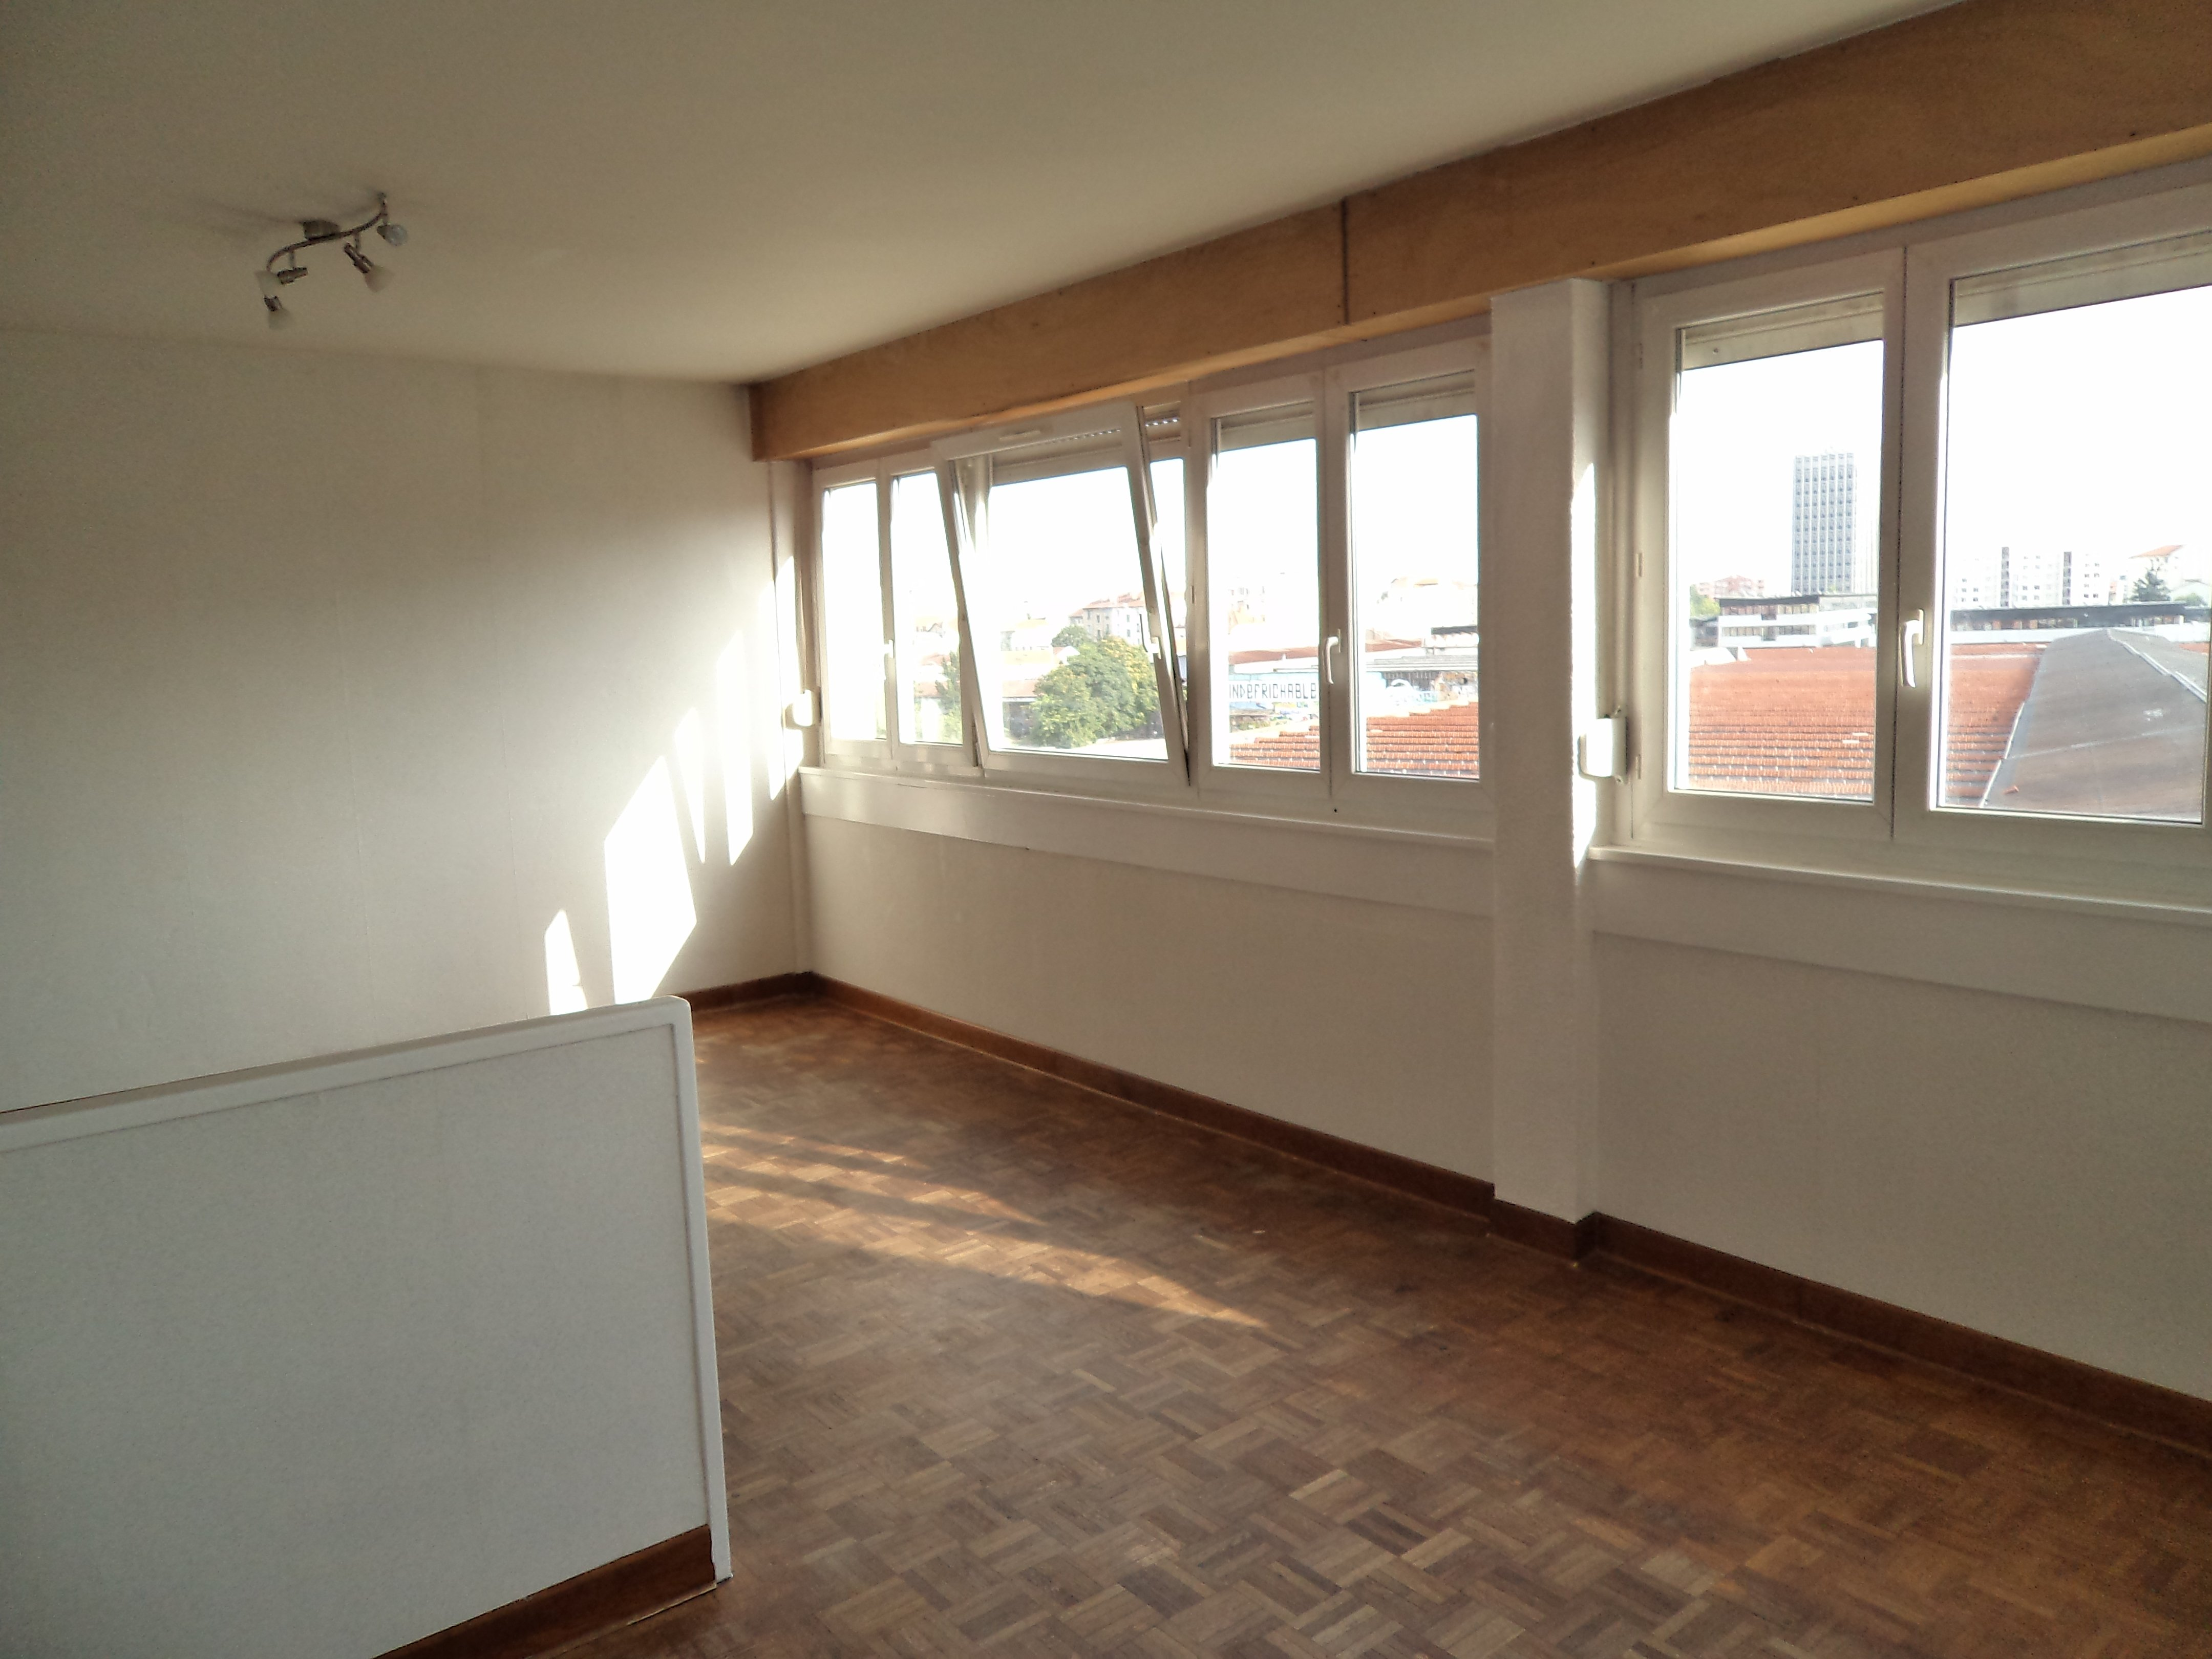 Location appartement Lyon 03, 0m²